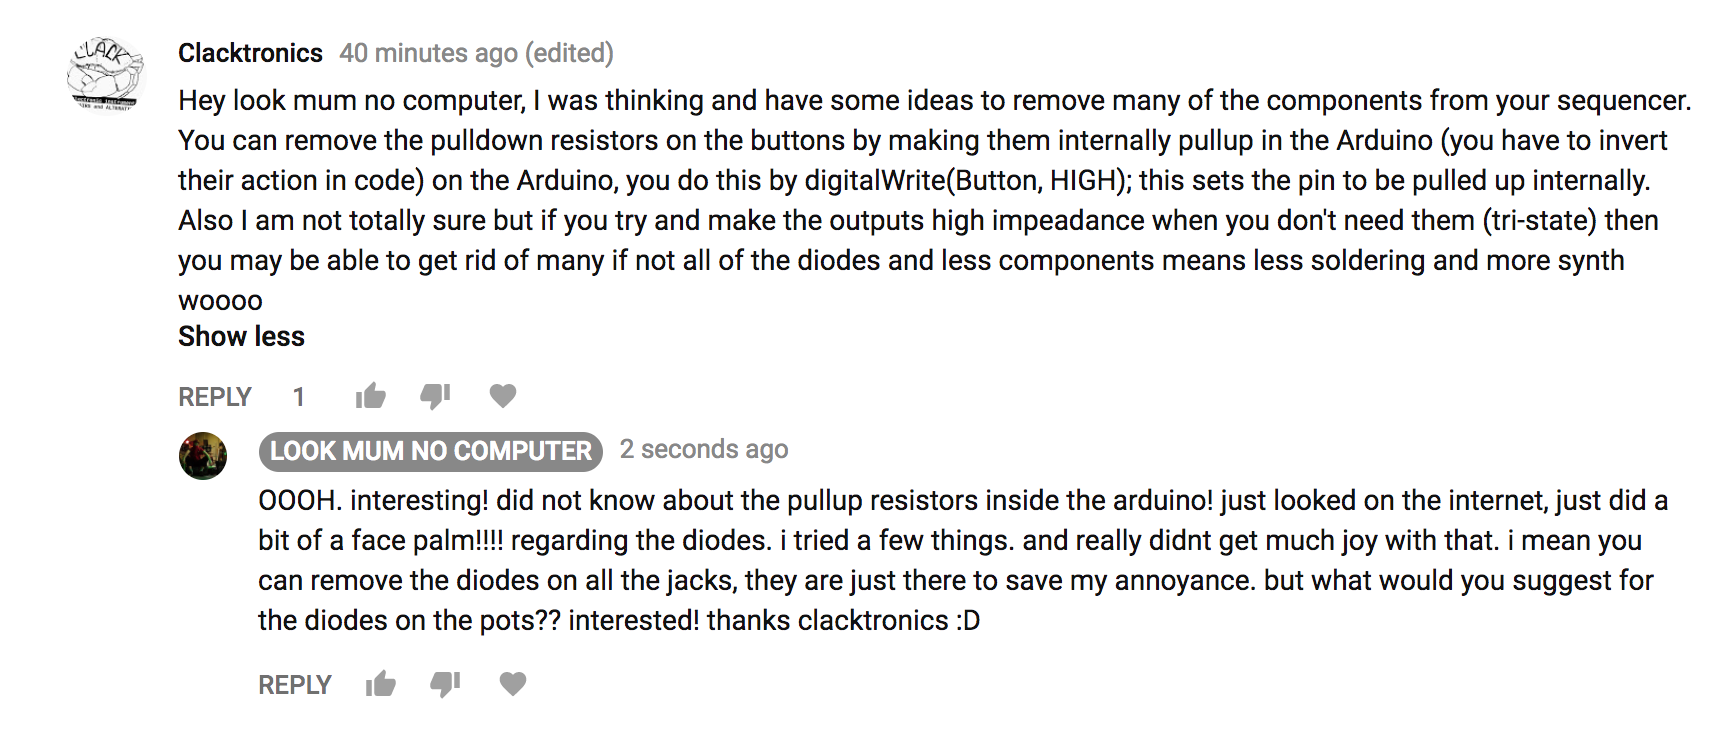 This is true. if you want to skip all them 10k resistors! i challenge you to figure this out! it will be a case of swapping all the HIGHS, and LOWS......  Also this raises stuff about the diodes! all of the diodes attached to the jacks, dont need to be there. they are there just incase sometimes you plug it into stuff that it dont play nice with. or the switches may trigger things they arent supposed to. if you aint bothered, you dont have to bother with them!  They are just rudimentary circuit conditioning.